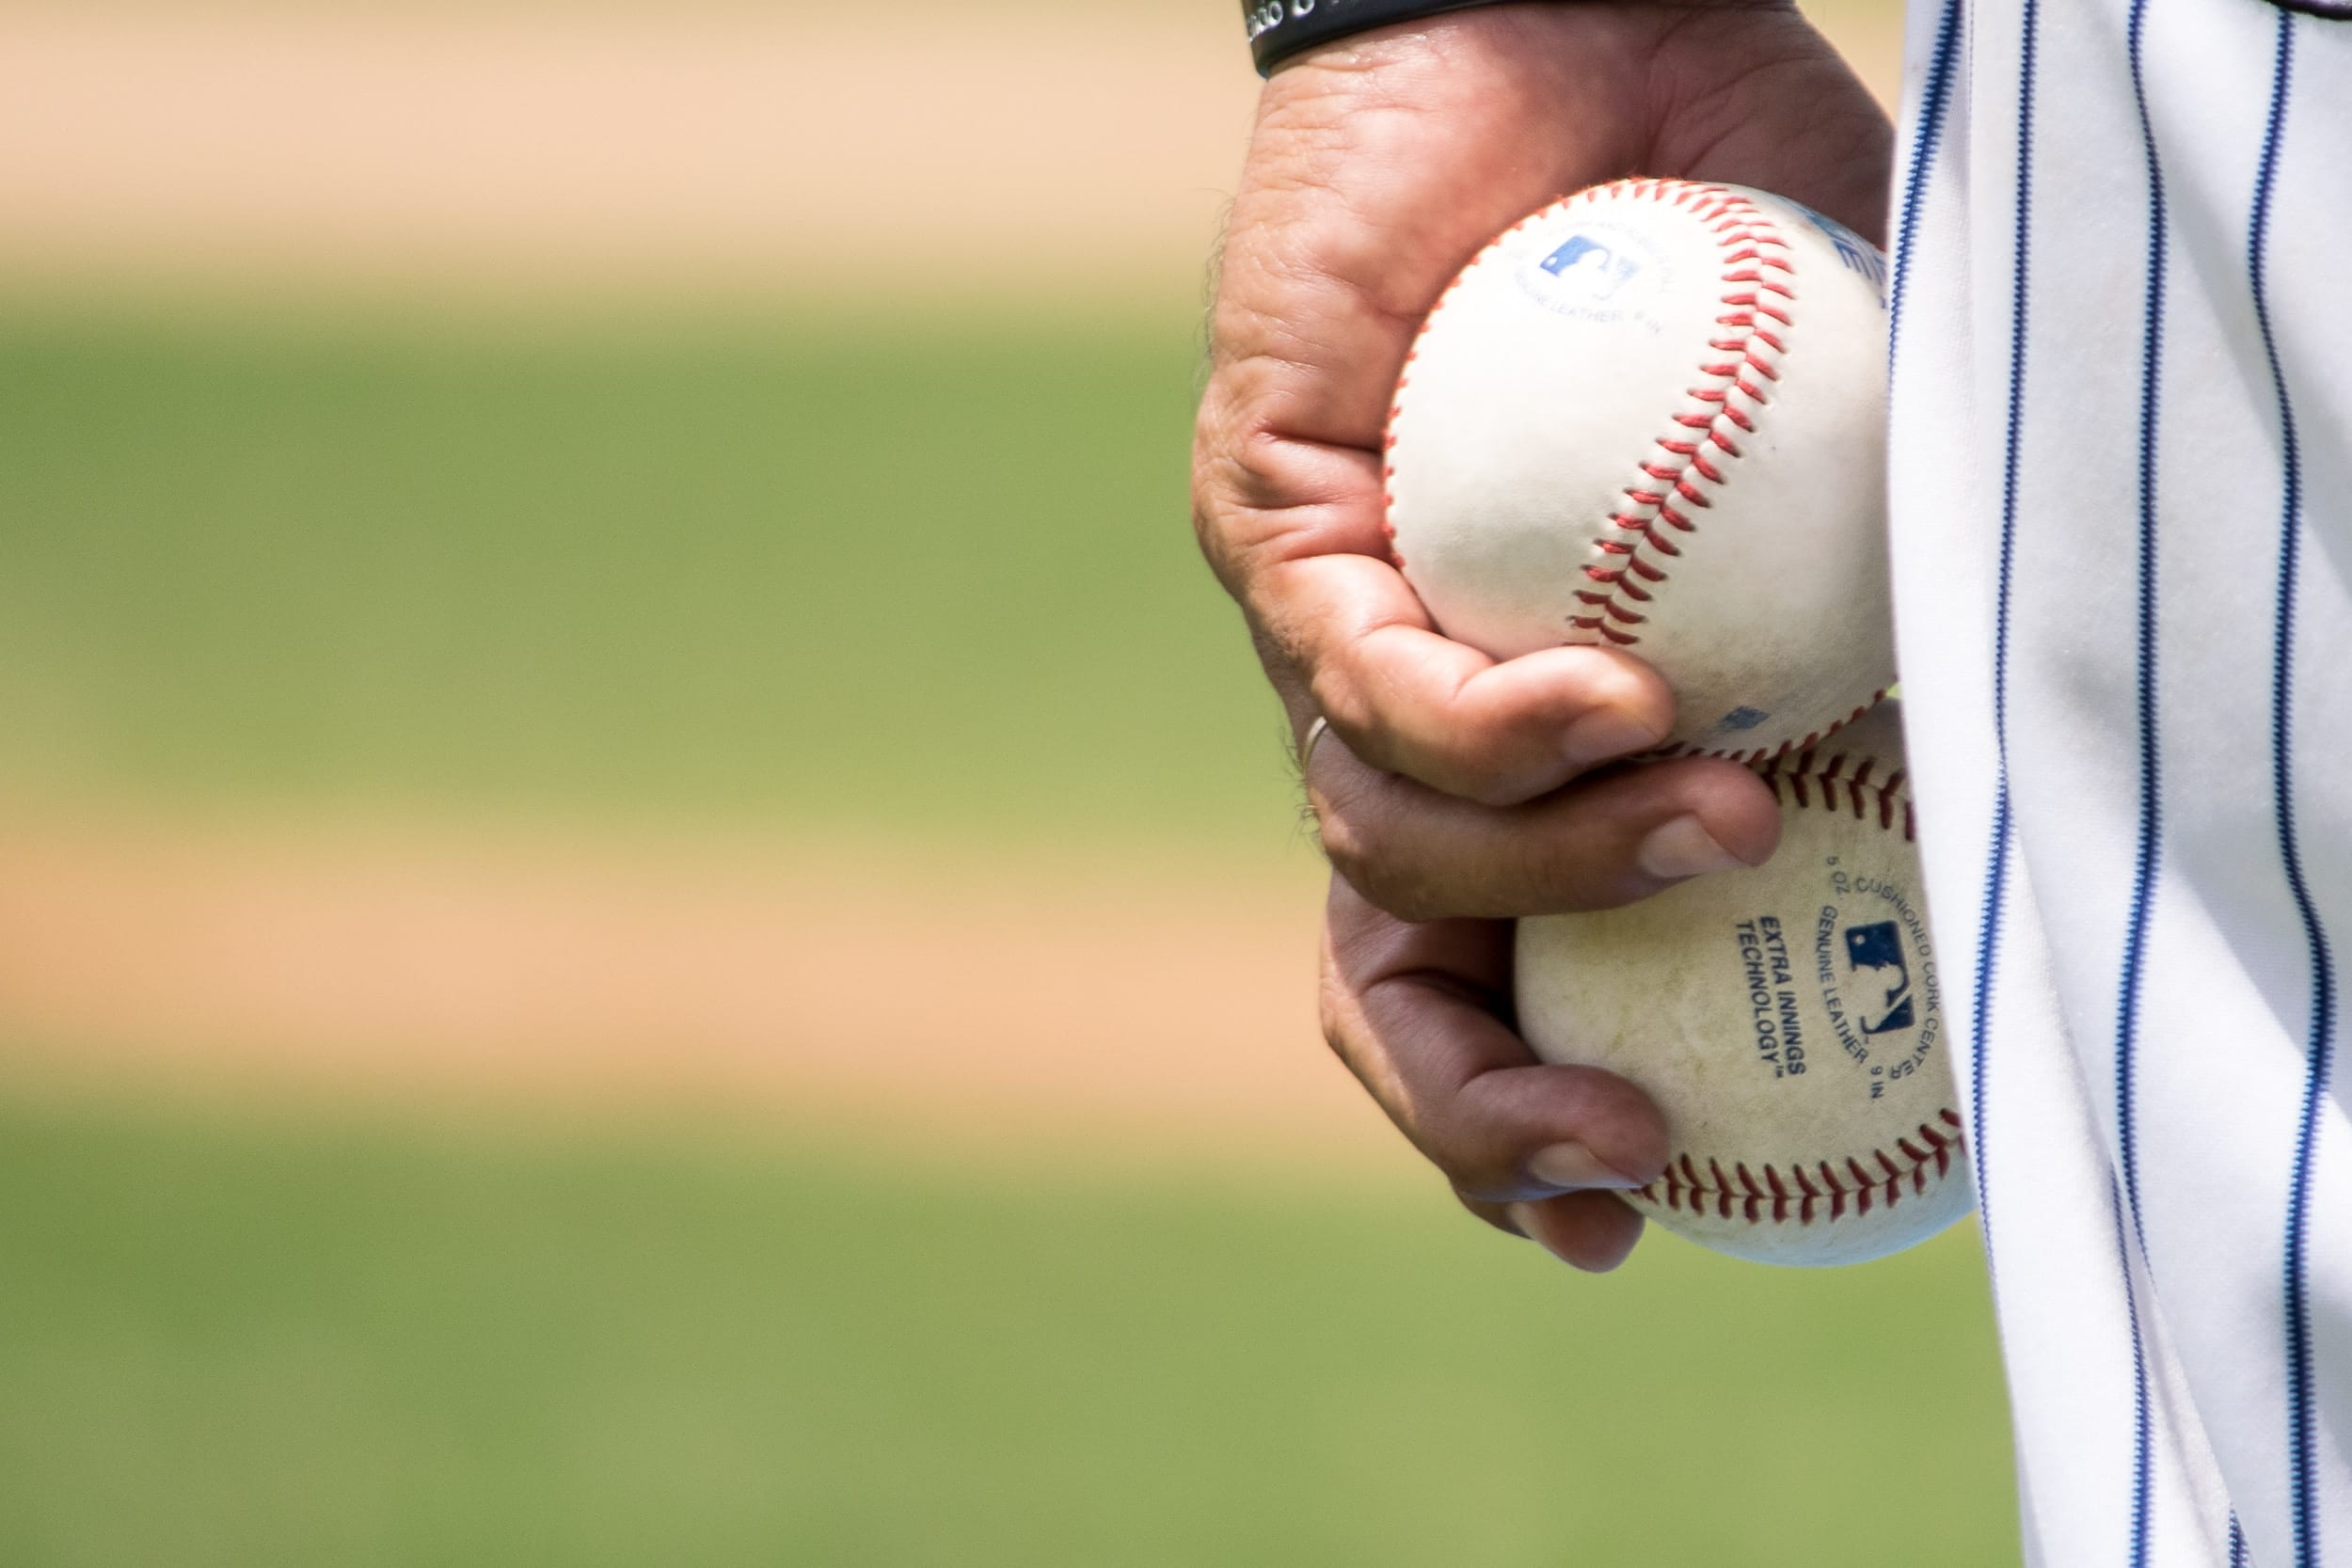 Coroner Rules Baseball Player Died From Mix of Opioids, Alcohol